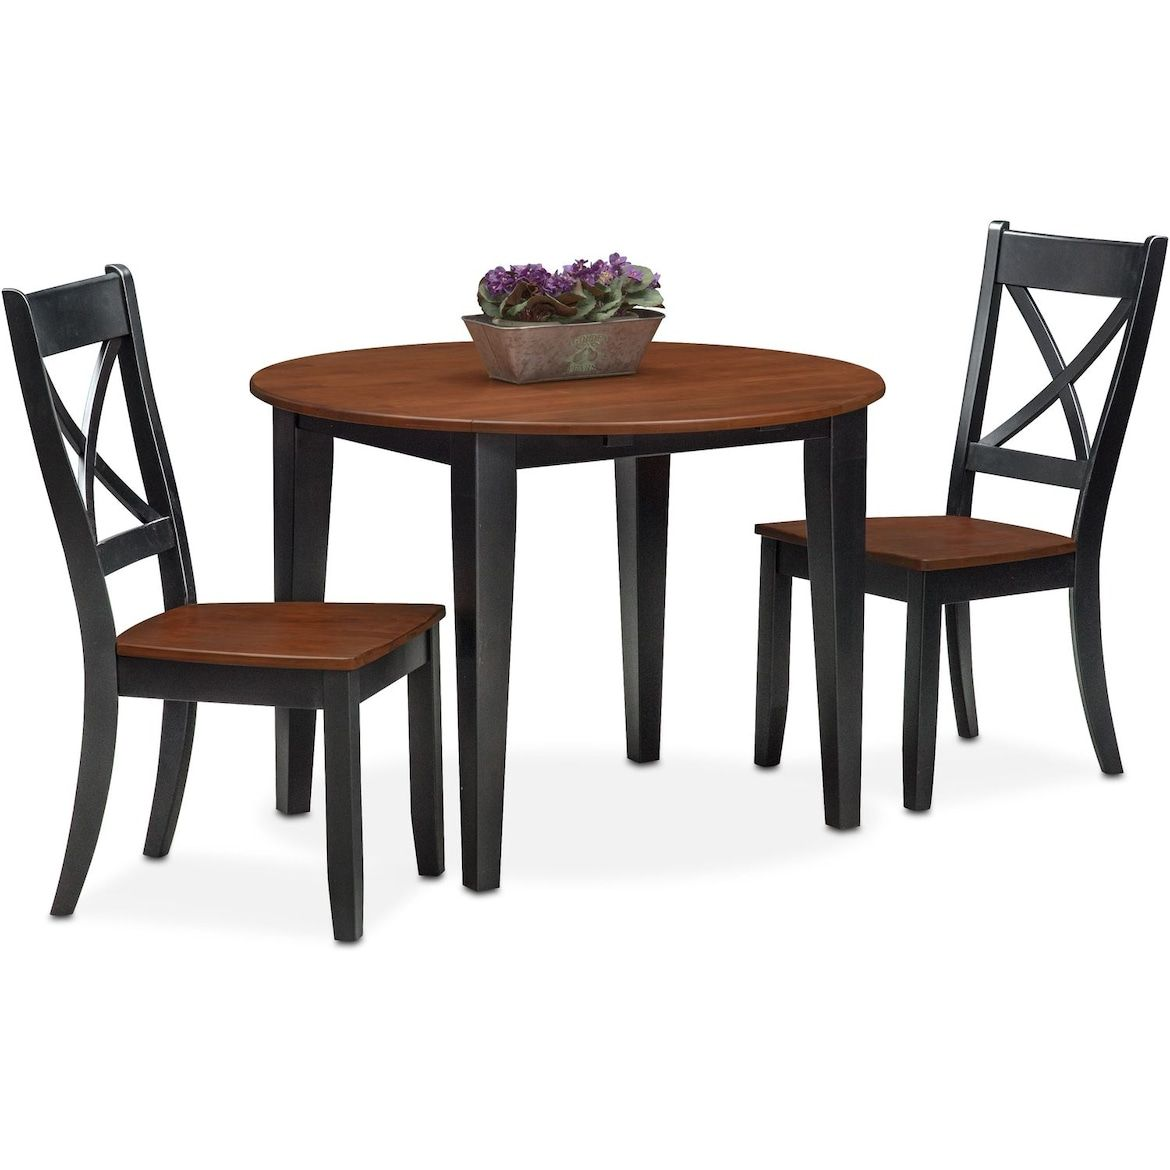 Nantucket Drop Leaf Dining Table And 2 Dining Chairs Dining